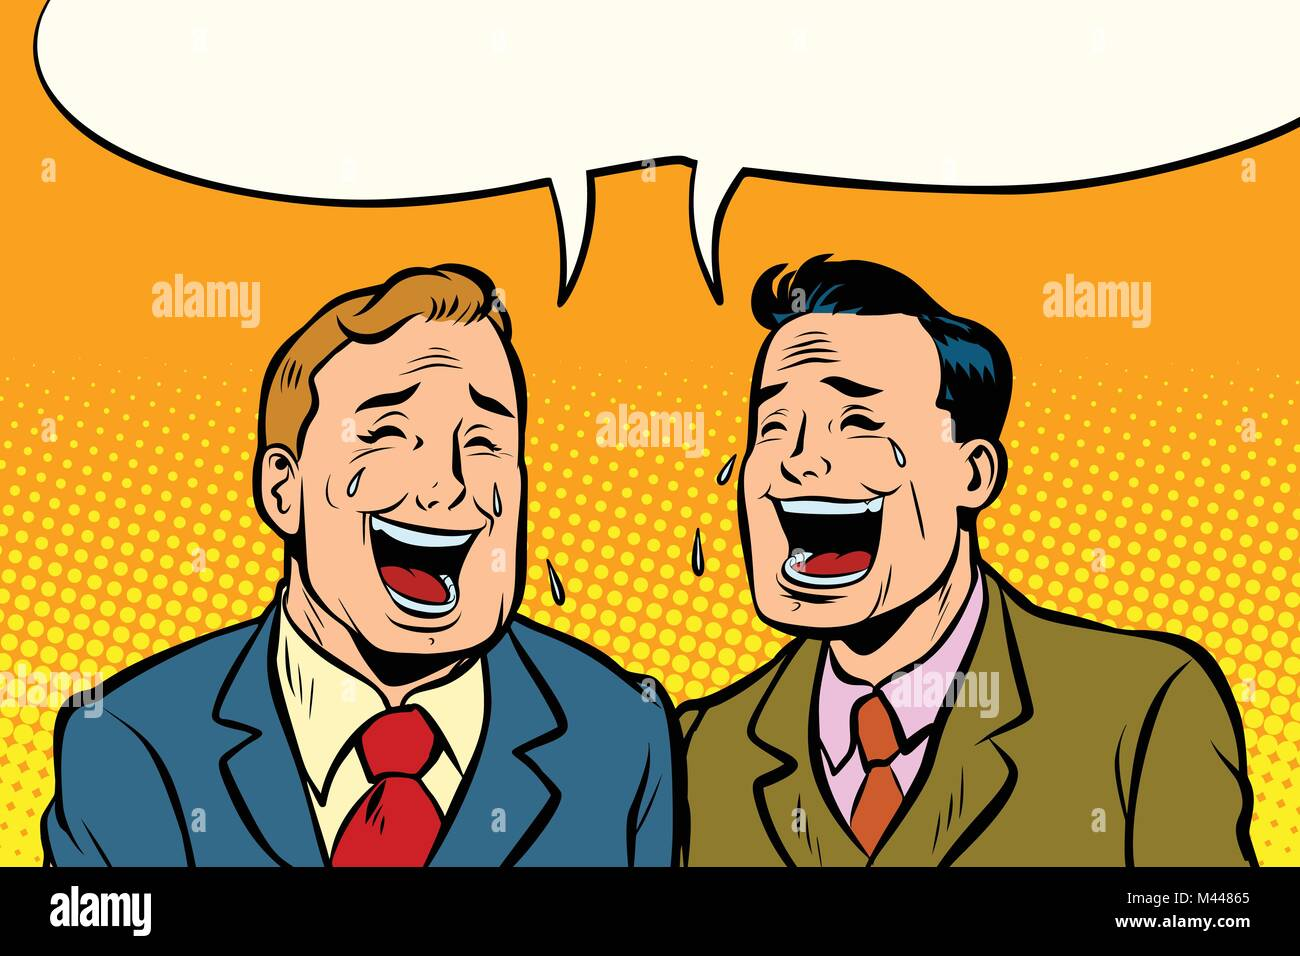 The two friends laugh - Stock Image